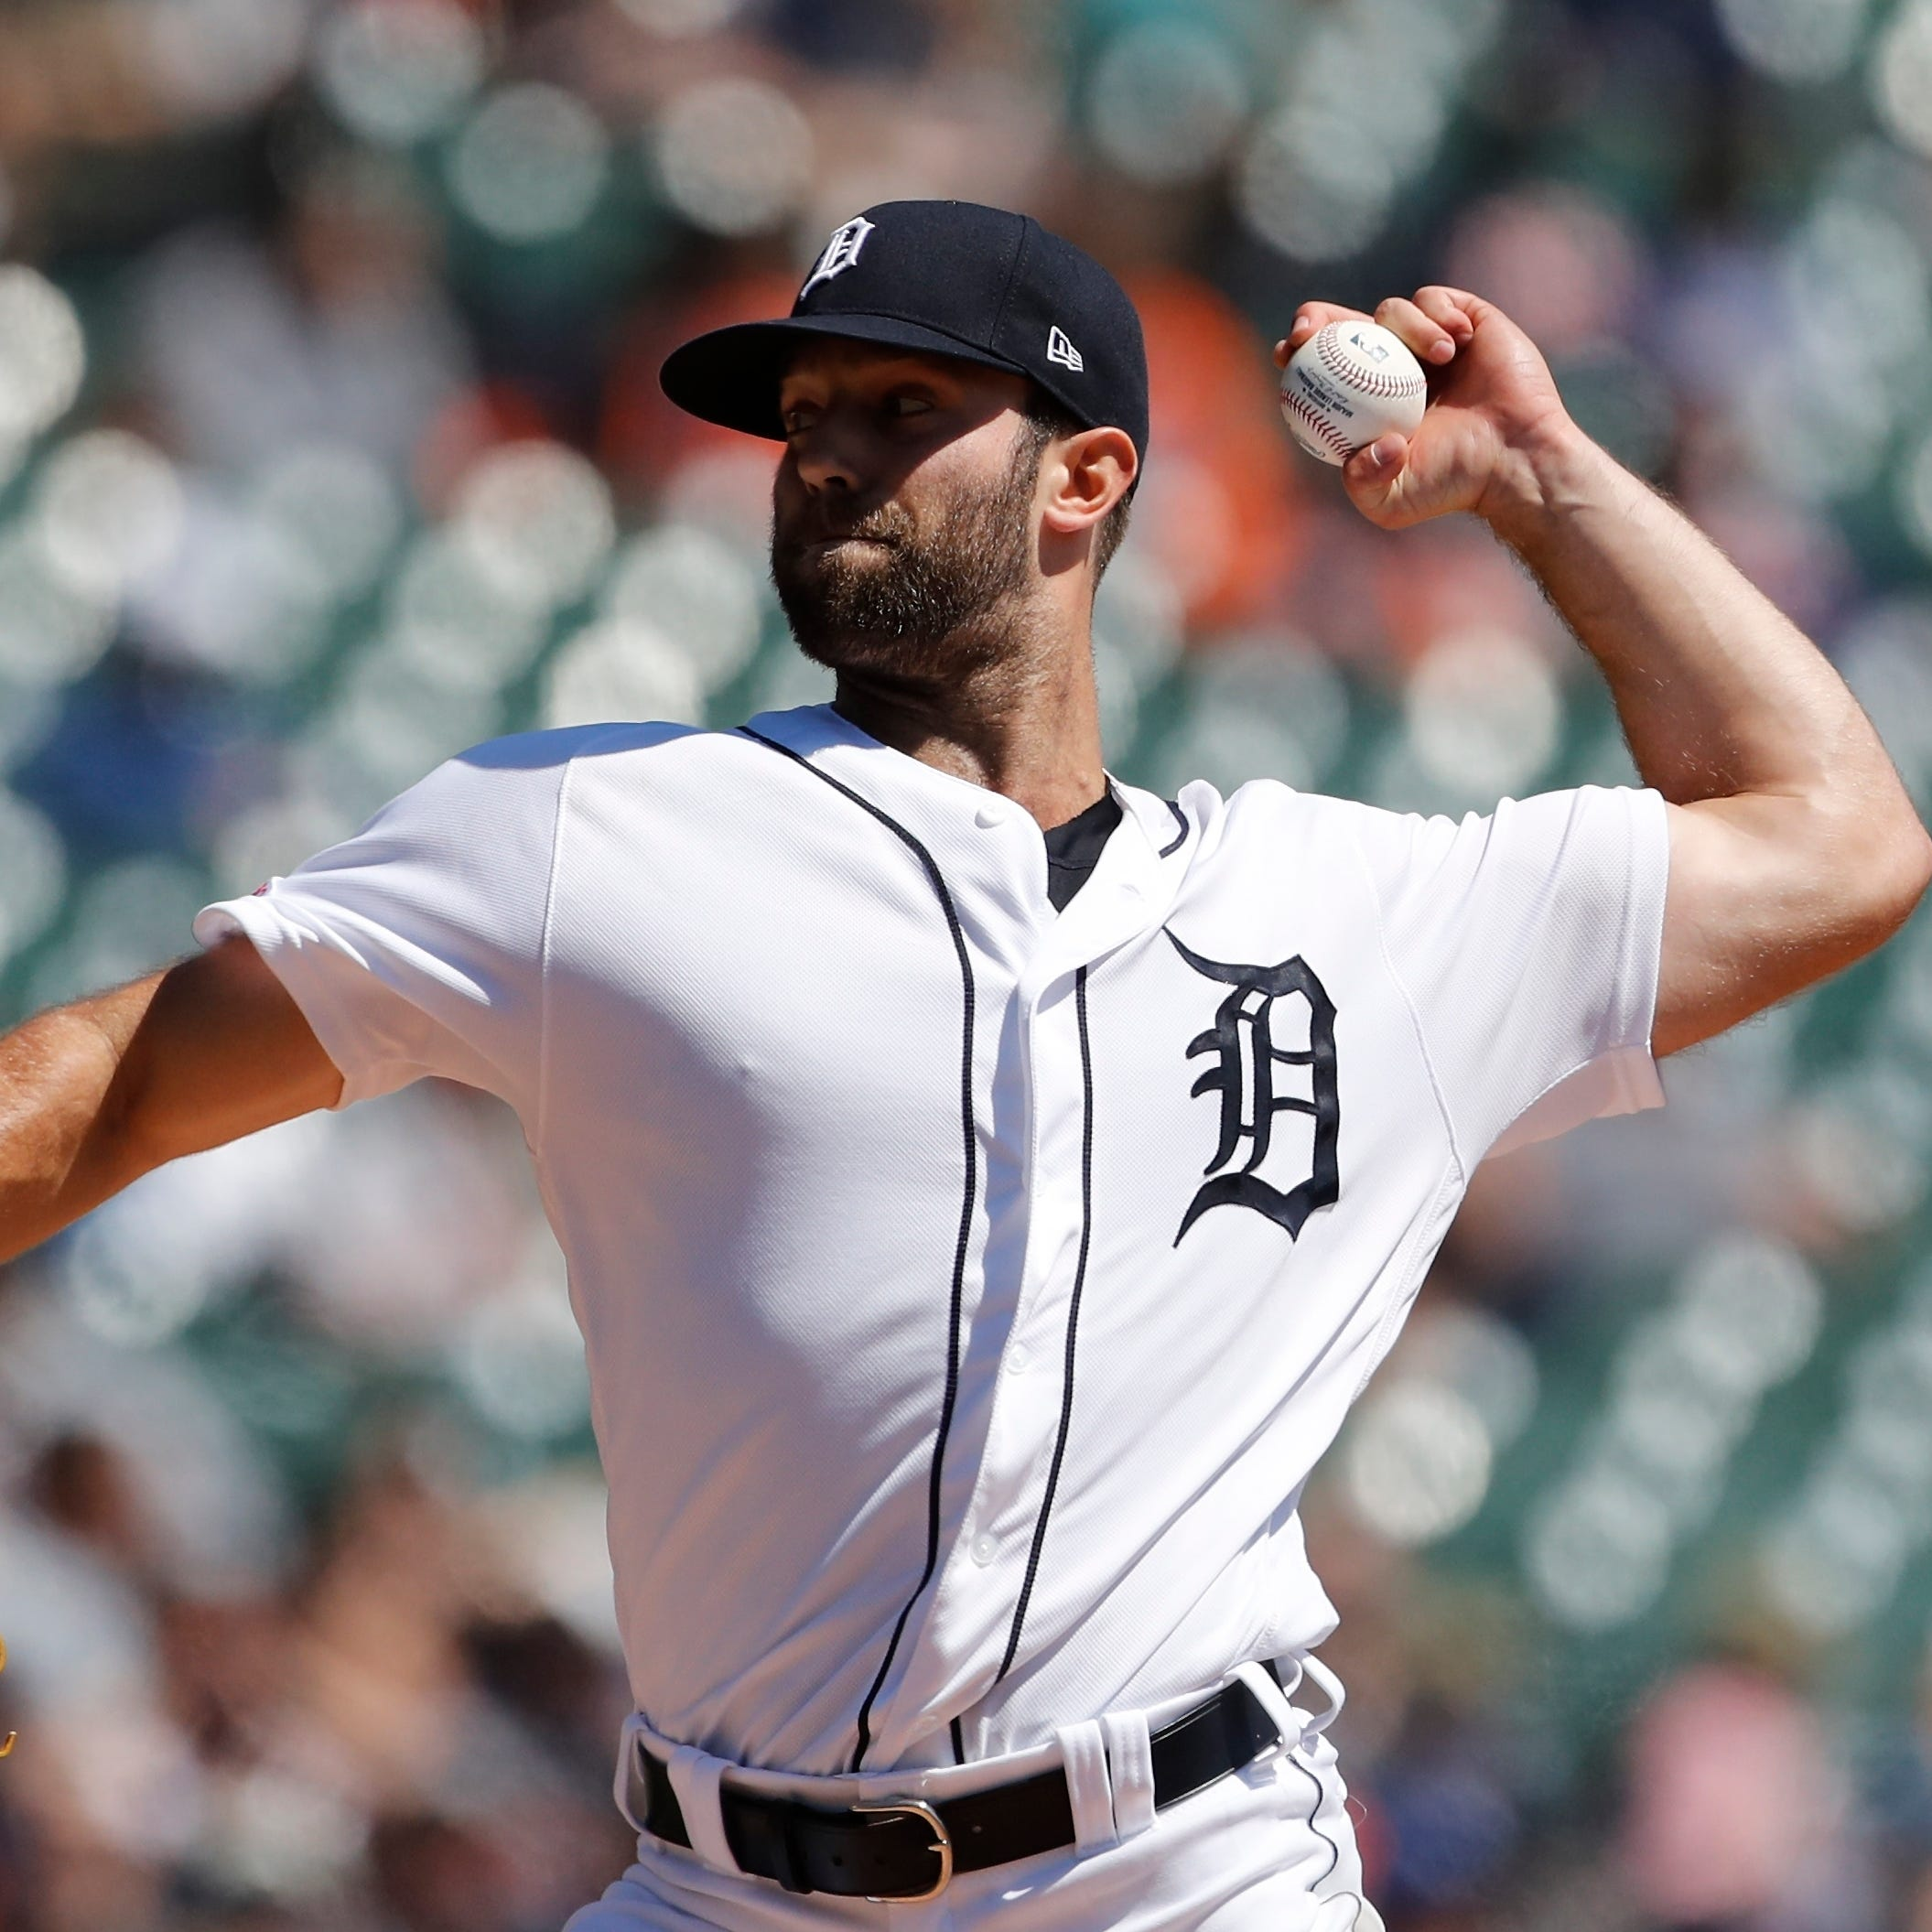 Daniel Norris shines in first start, Tigers trip White Sox